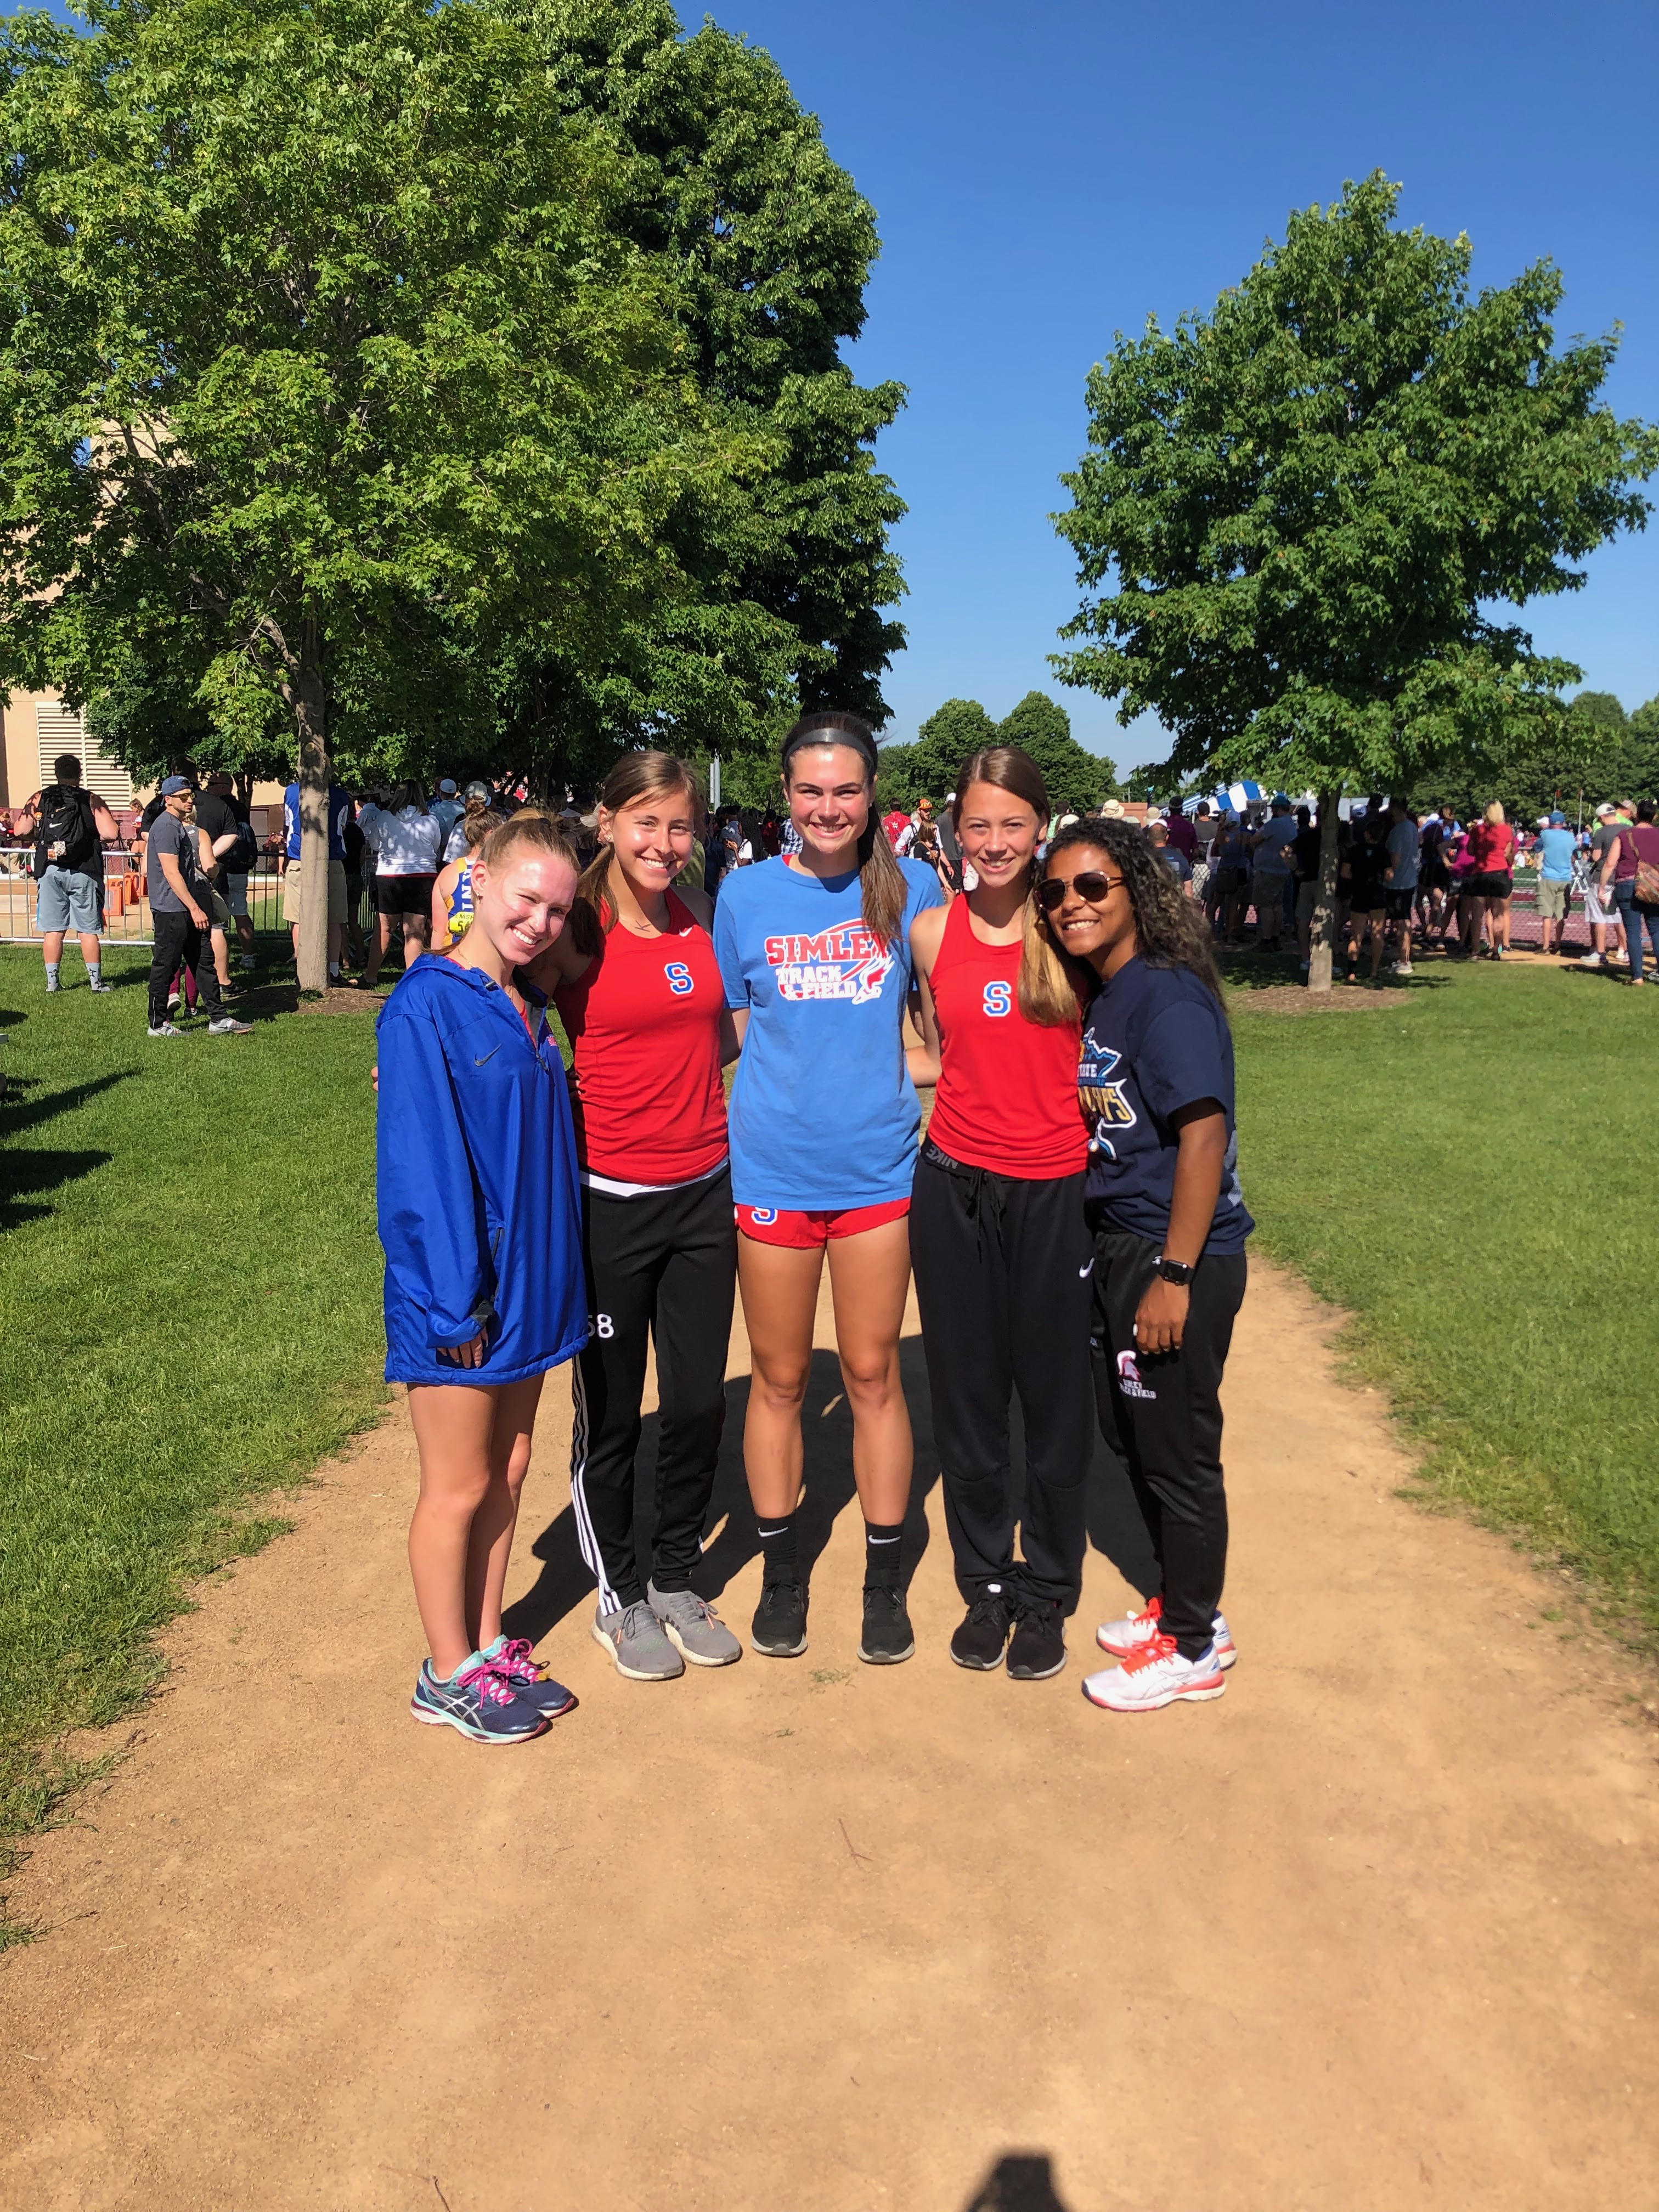 4 x 100 Meter Relay Takes 6th Place at State Meet